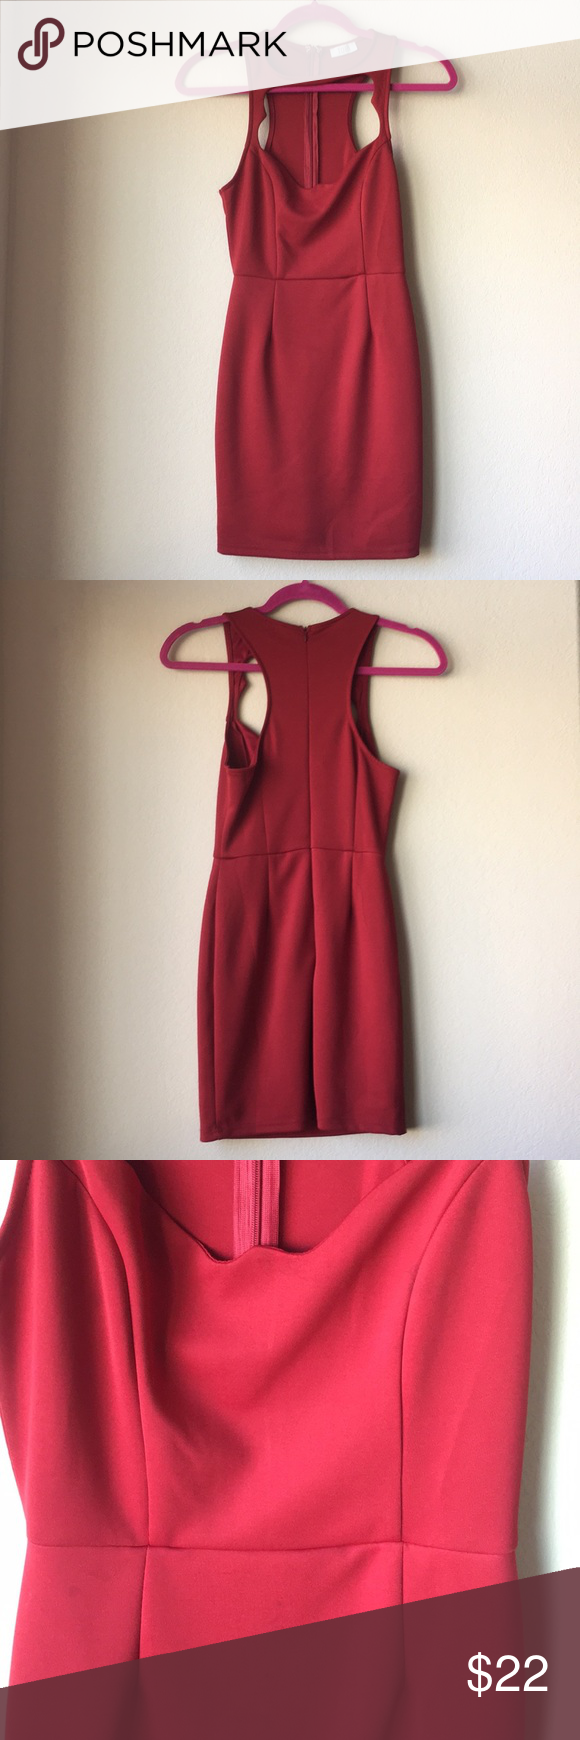 Vday tobi dark red cut out dress small dark red dark and minis